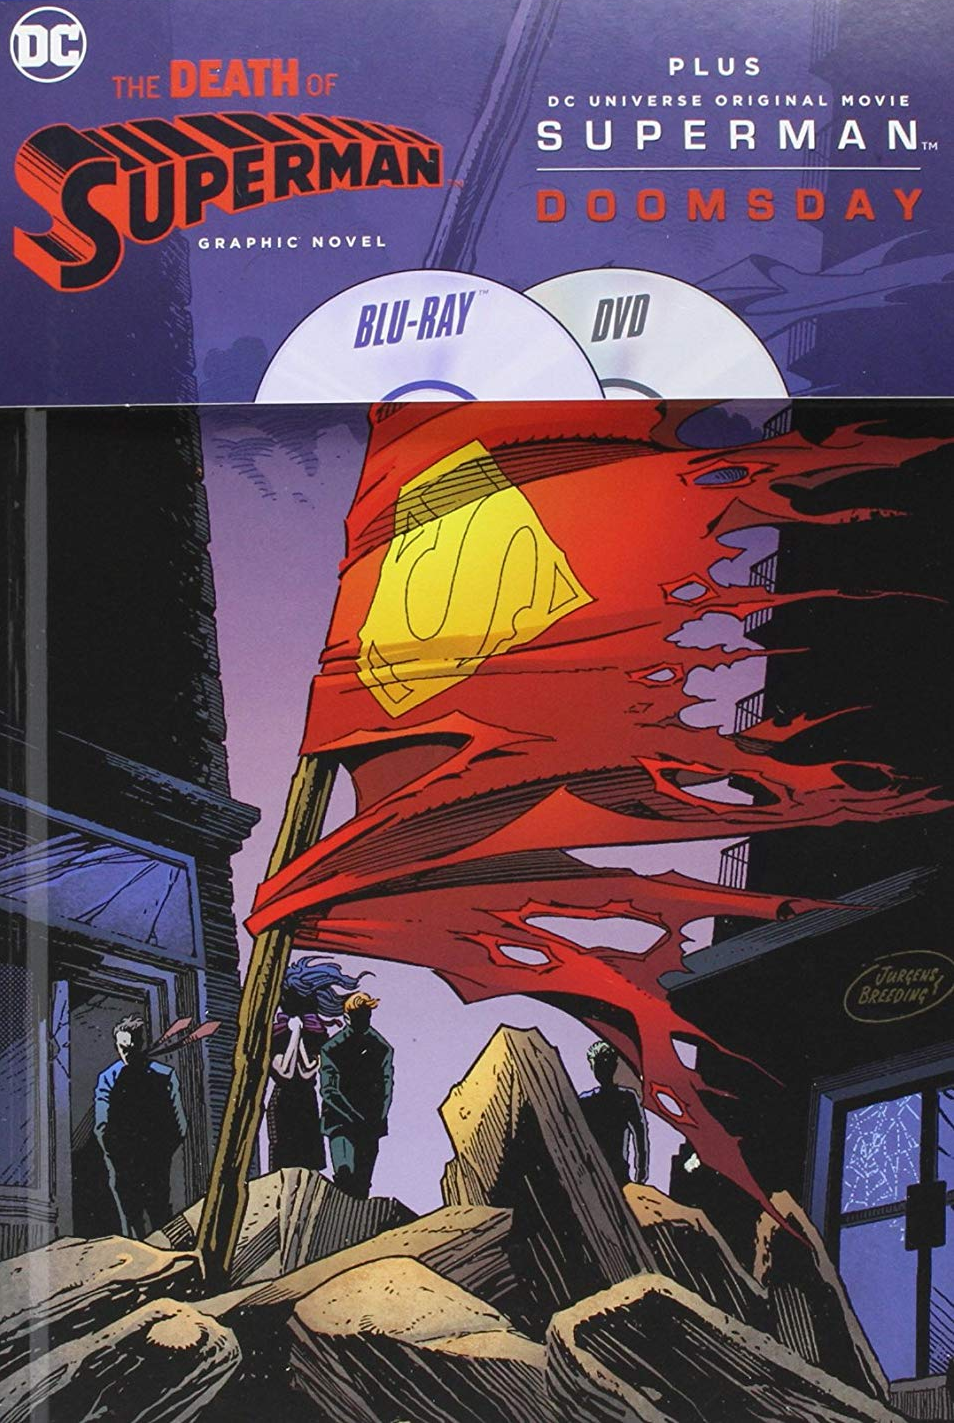 DCU: Superman Doomsday + Death of Superman Graphic Novel Digibook [Blu-ray+DVD]